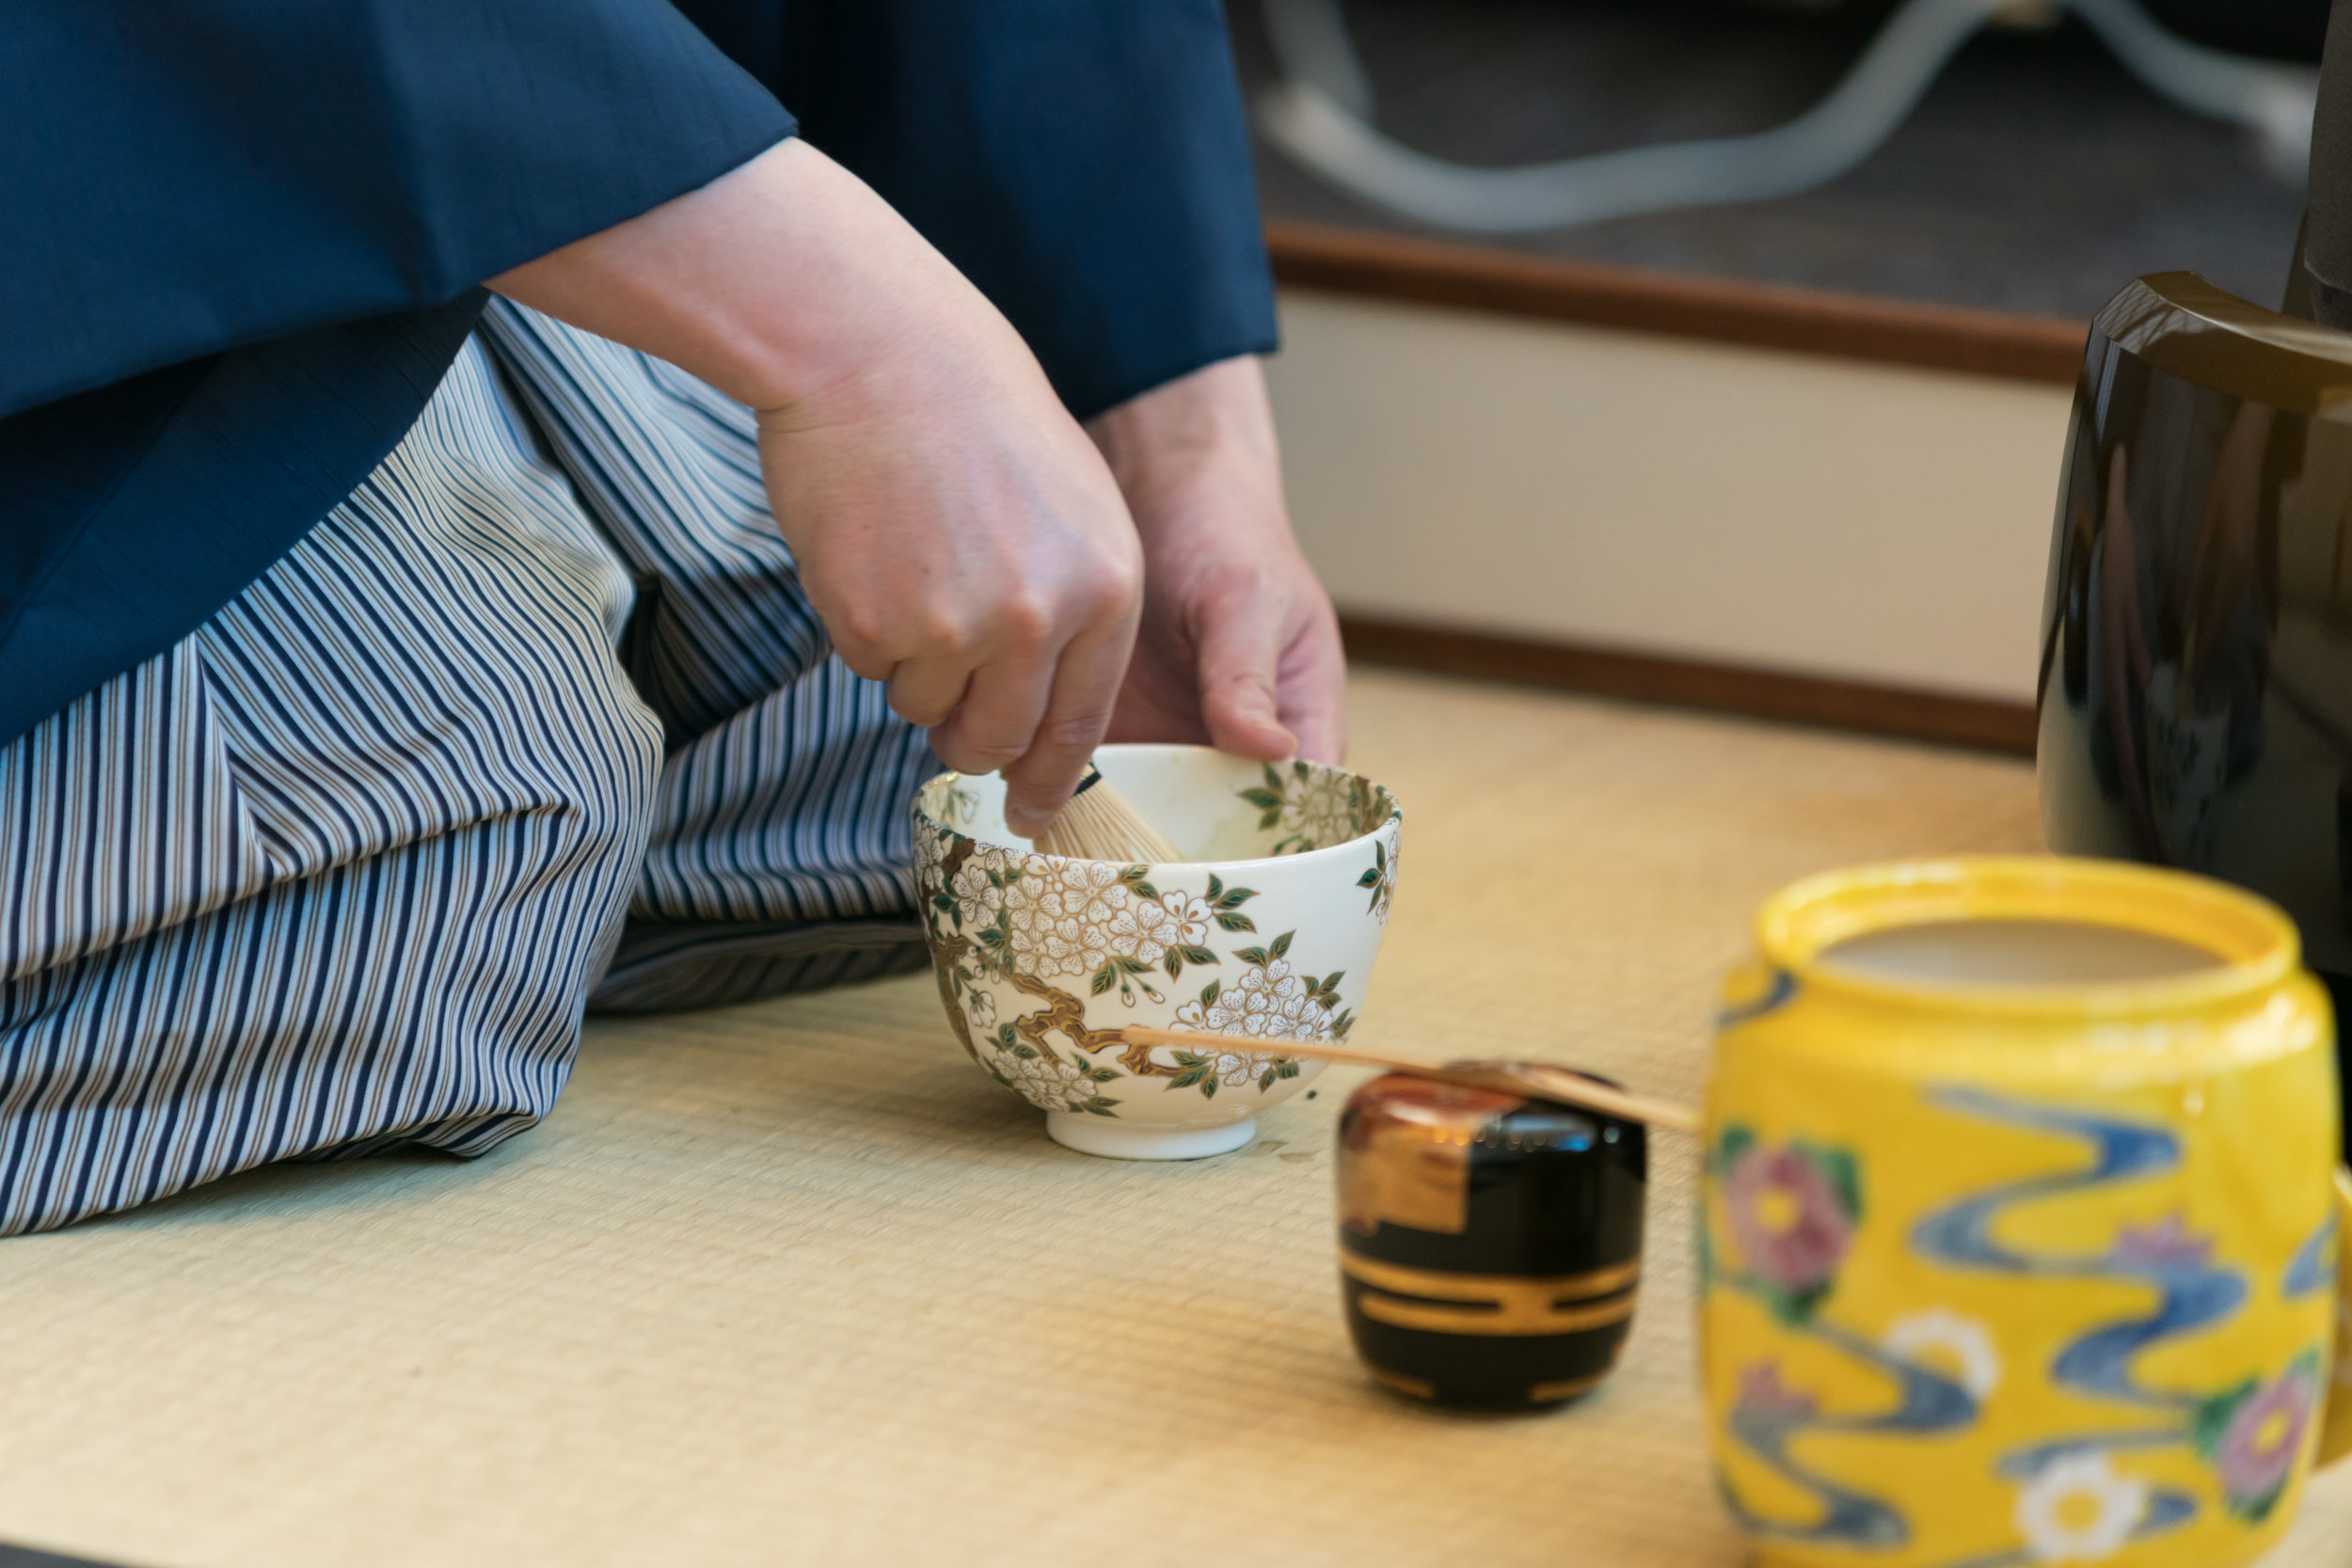 A cherry blossom tea bowl for whisking matcha. Photo by  Ling Luo .